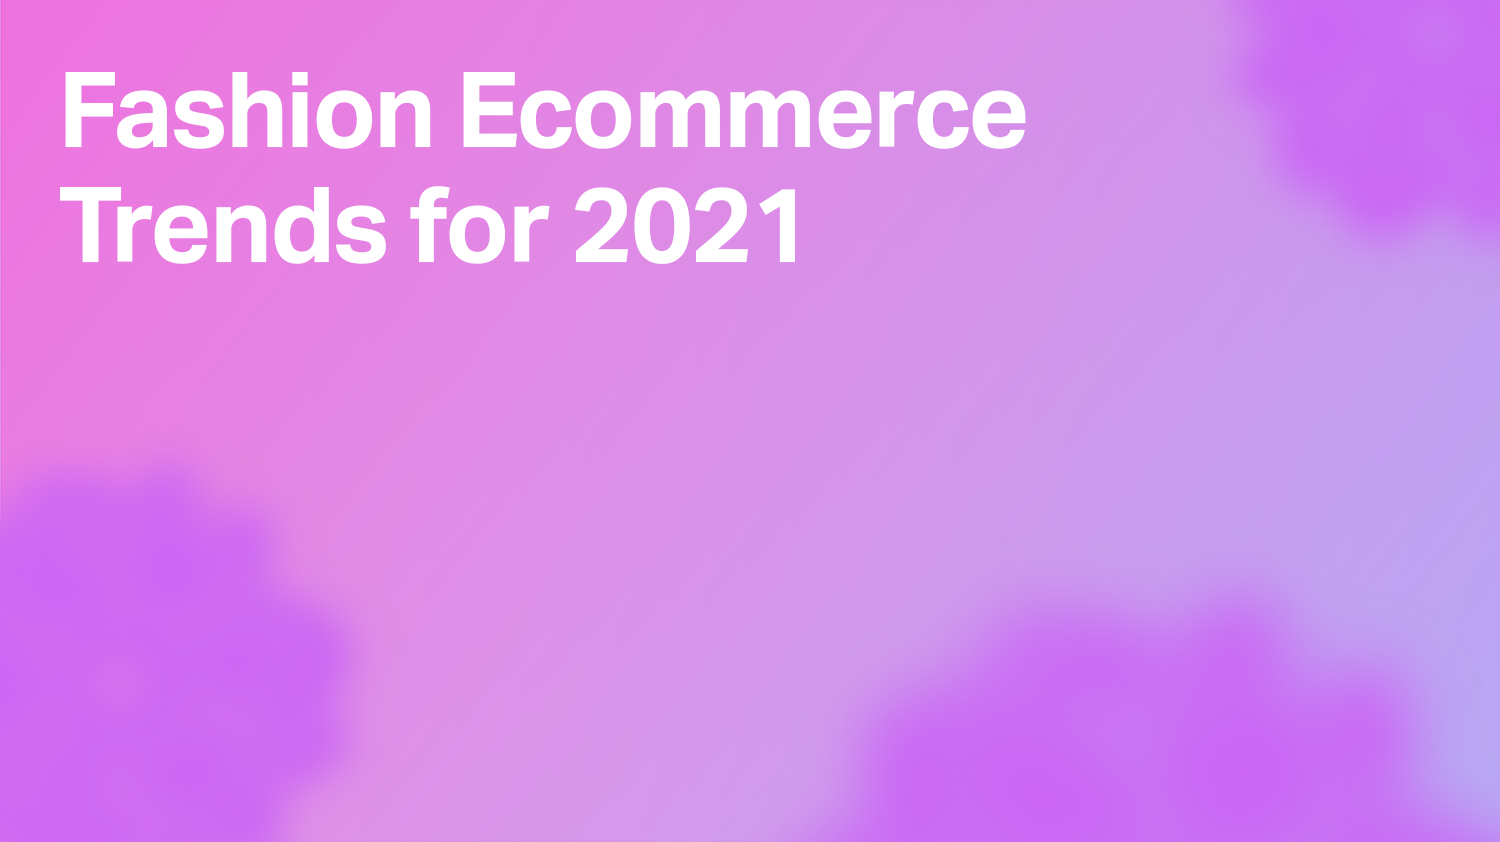 Fashion Ecommerce Trends for 2021